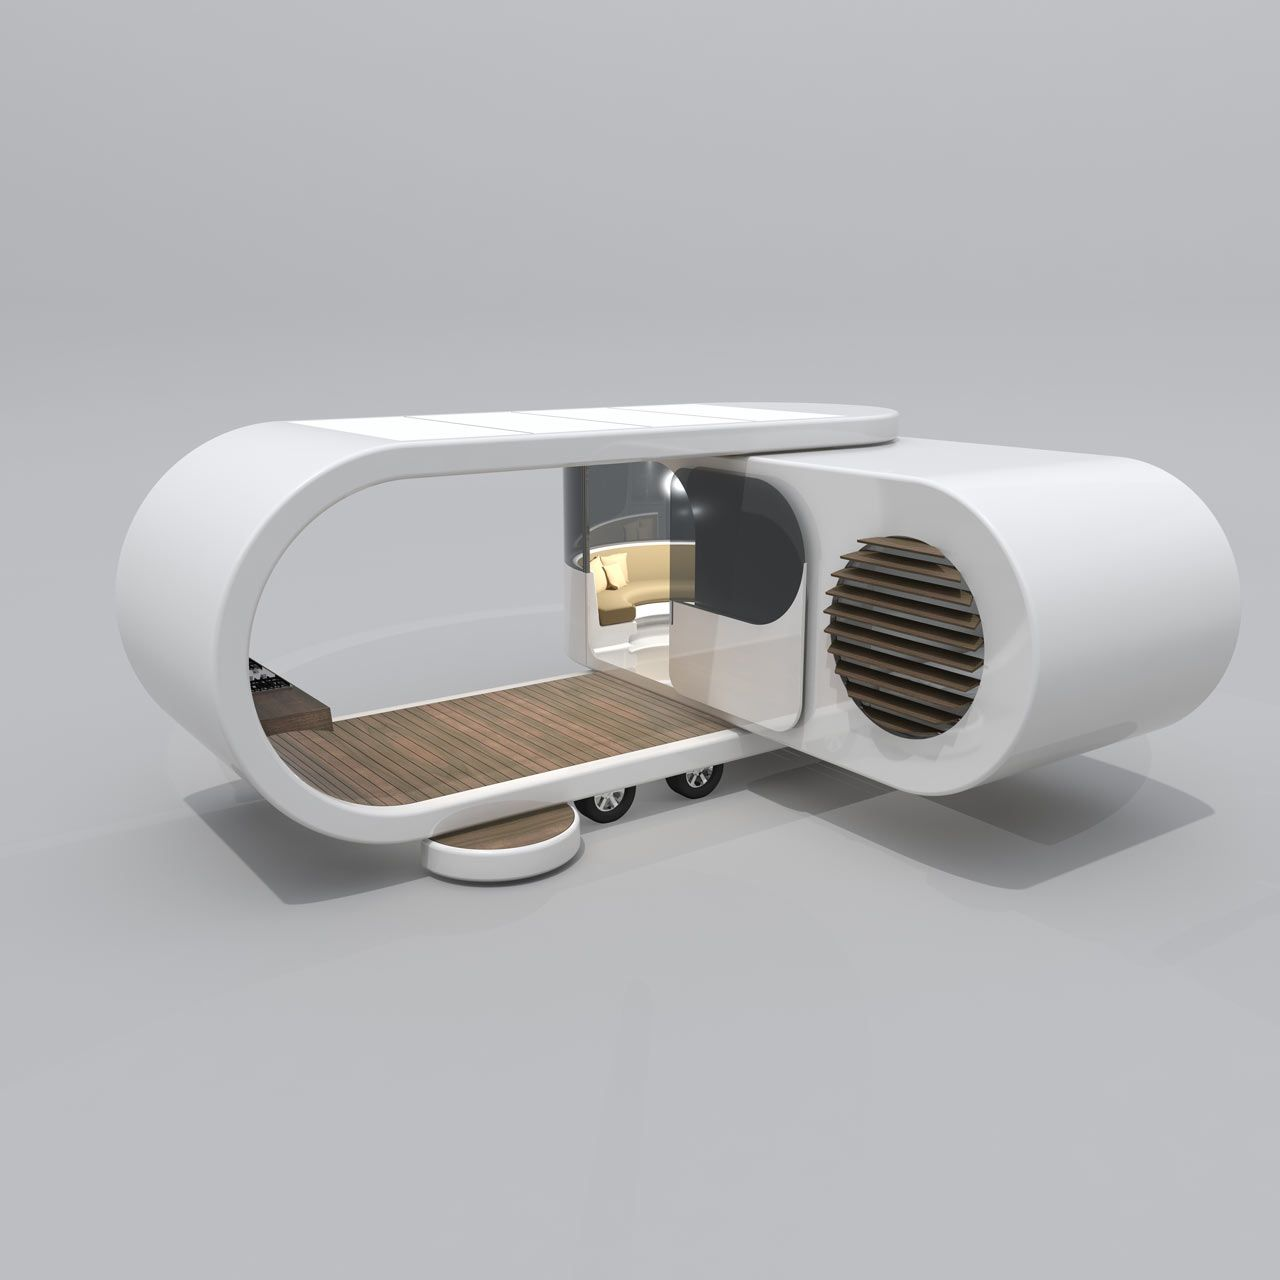 romotow-mobile-home-modern-concept | Pinterest | Modern and Design on concept cars, future flying homes, concept travel trailers, fleetwood homes, open-concept homes, small cottage style modular homes, concept campers, bungalow style homes, shipping trailer homes, concept motorcycles, portable homes, concept tents, concept houses, inside shipping container homes, eco modular homes,